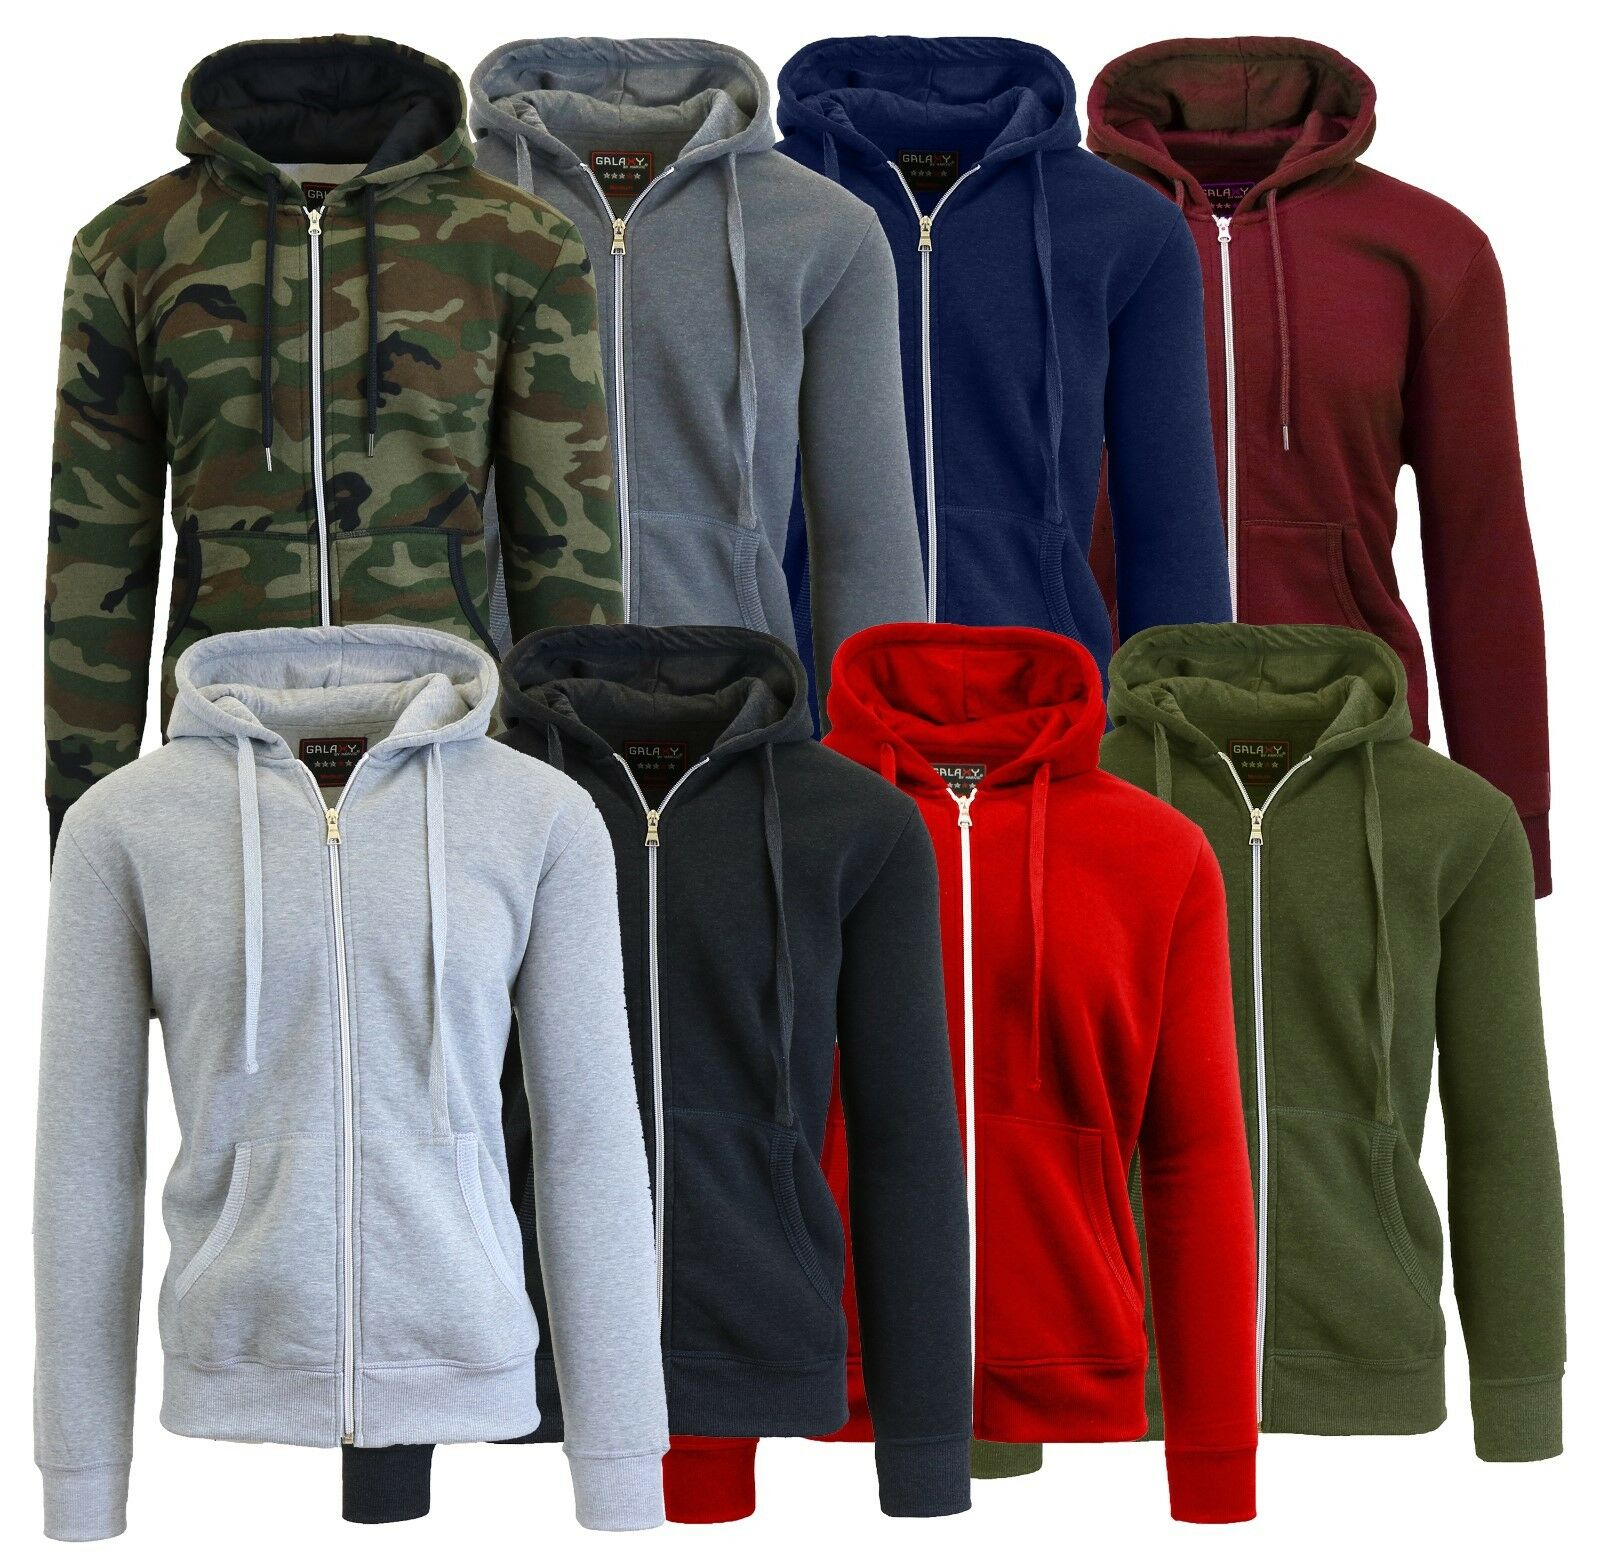 Mens Fleece Hoodie Jacket Sweater Layering Zip Up & Pullover & Sherpa – S-XXL Activewear